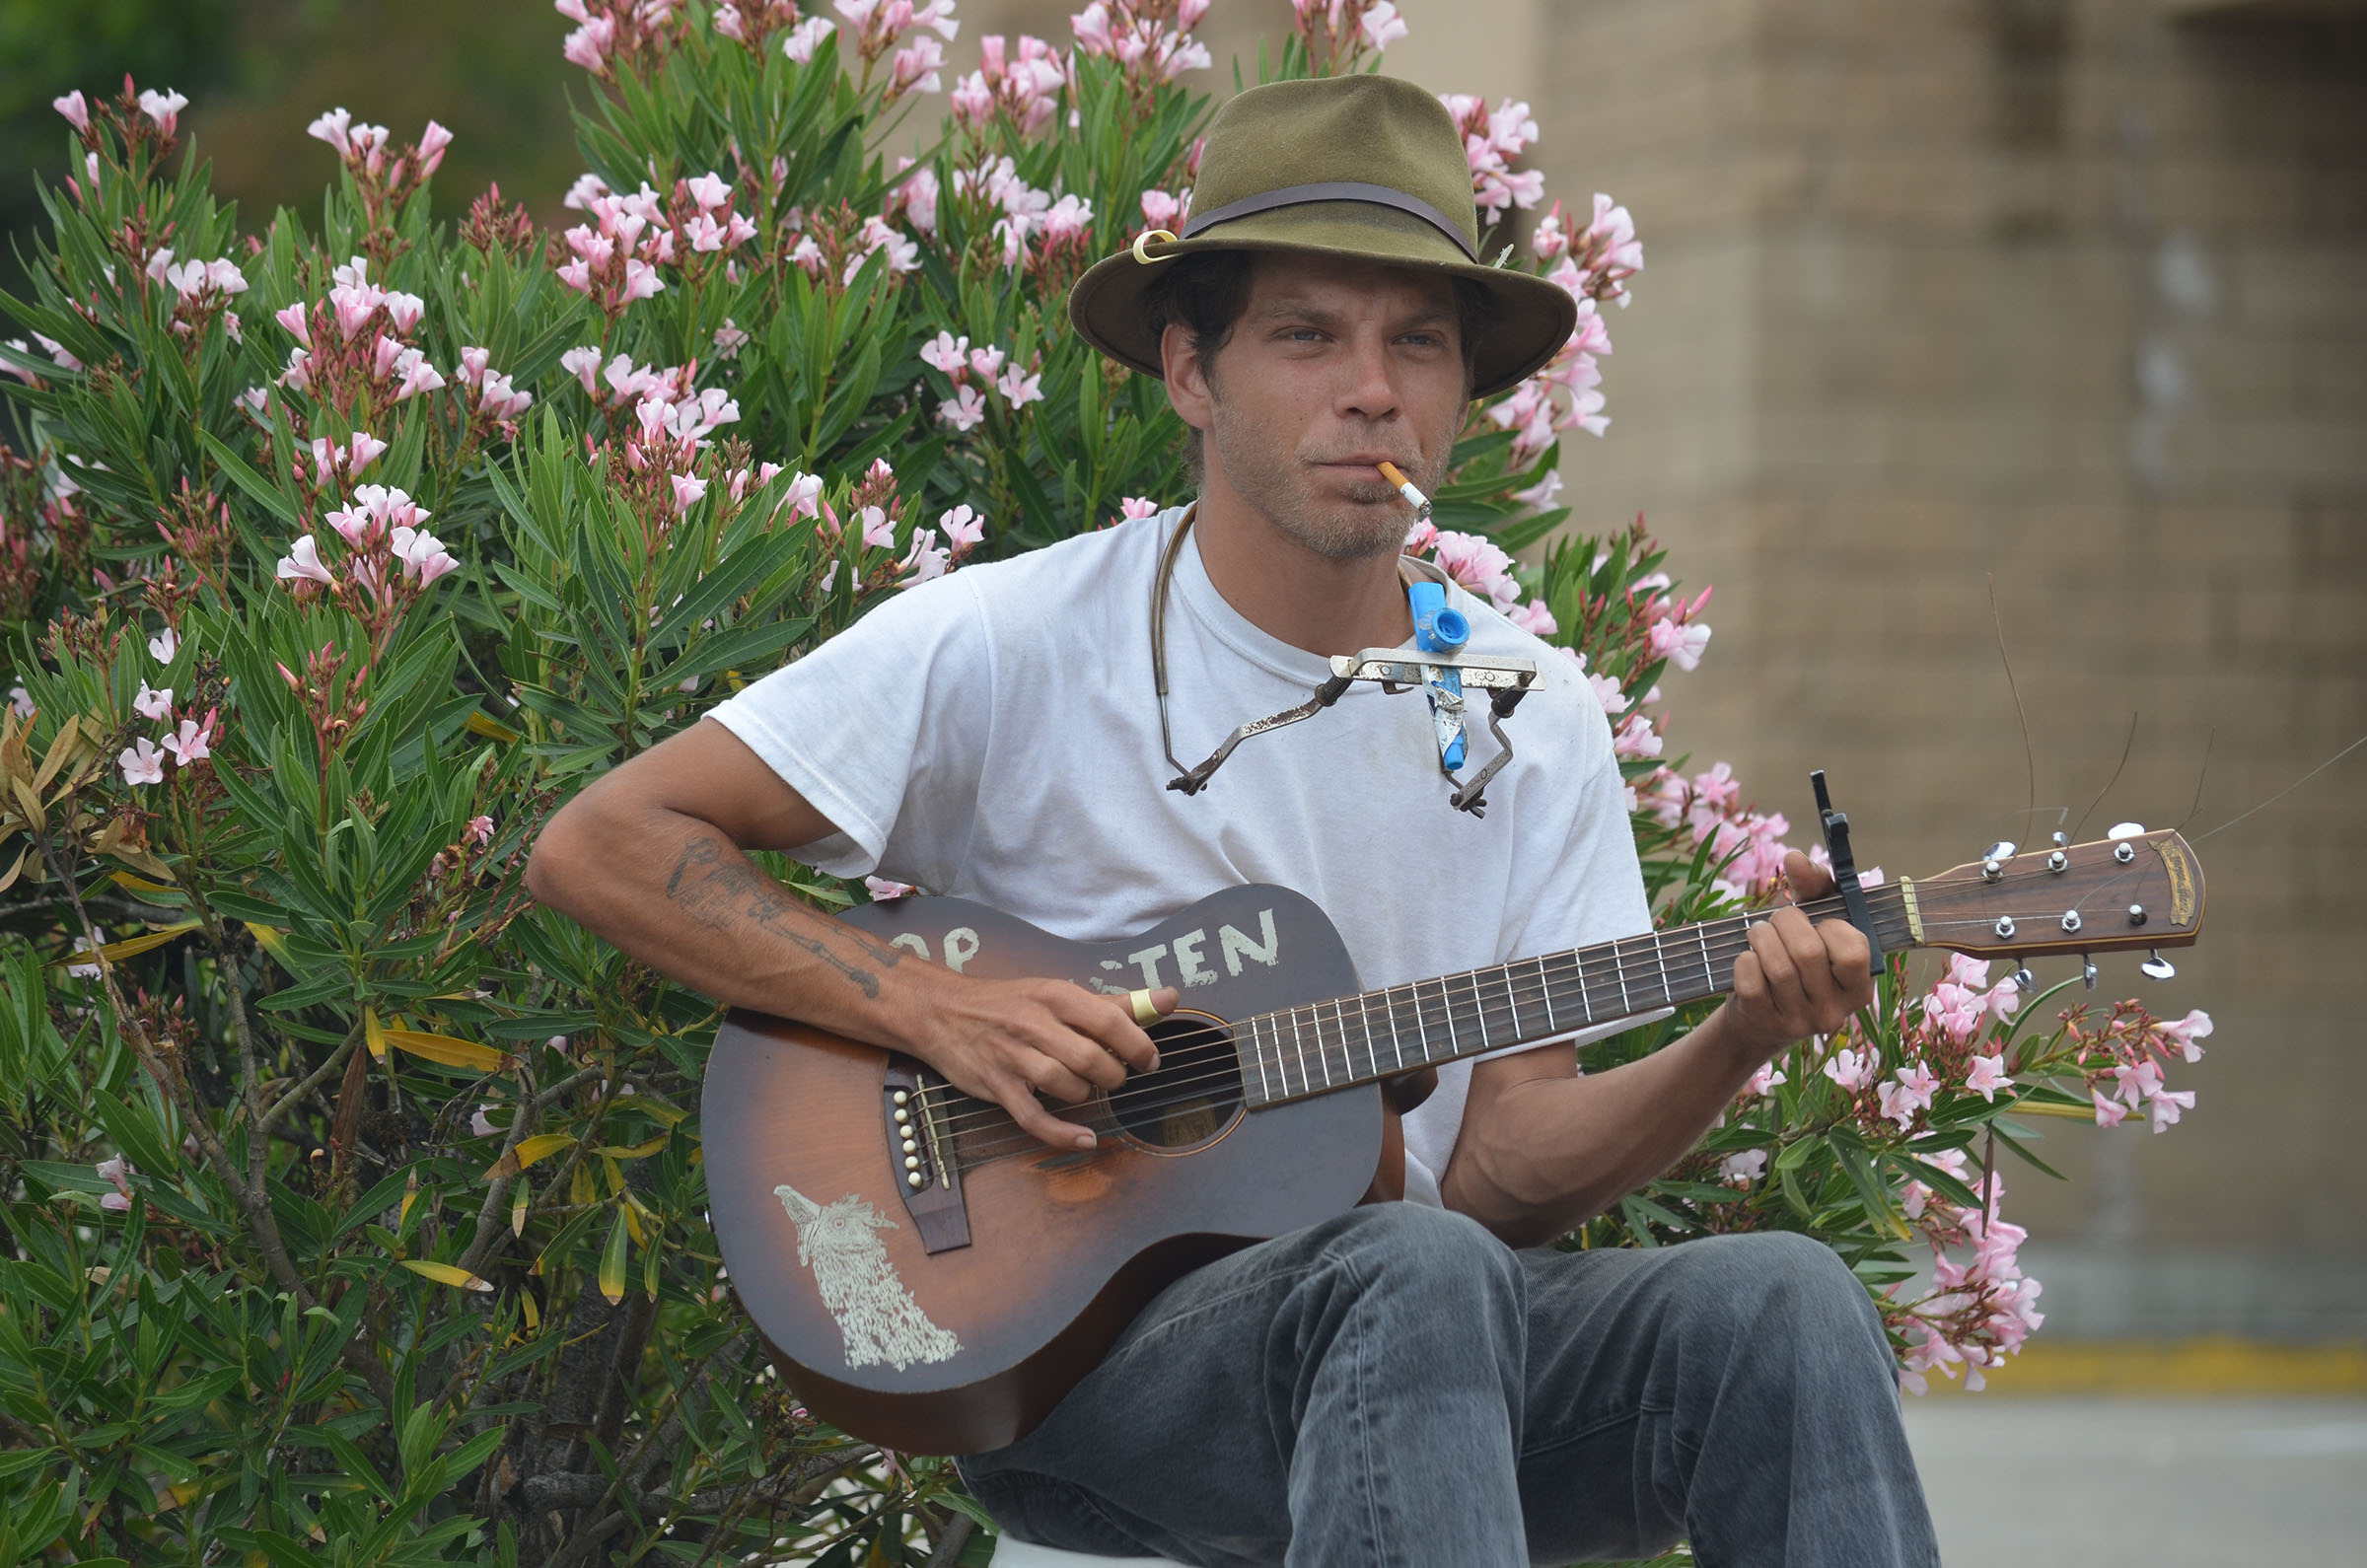 Matt Rivers plays some jug band music in the parking lot of a shopping center in Escondido on Saturday. Rivers, who grew up in Escondido, has been living the lifestyle of troubadour for at least six years now. Photo by Tony Cagala